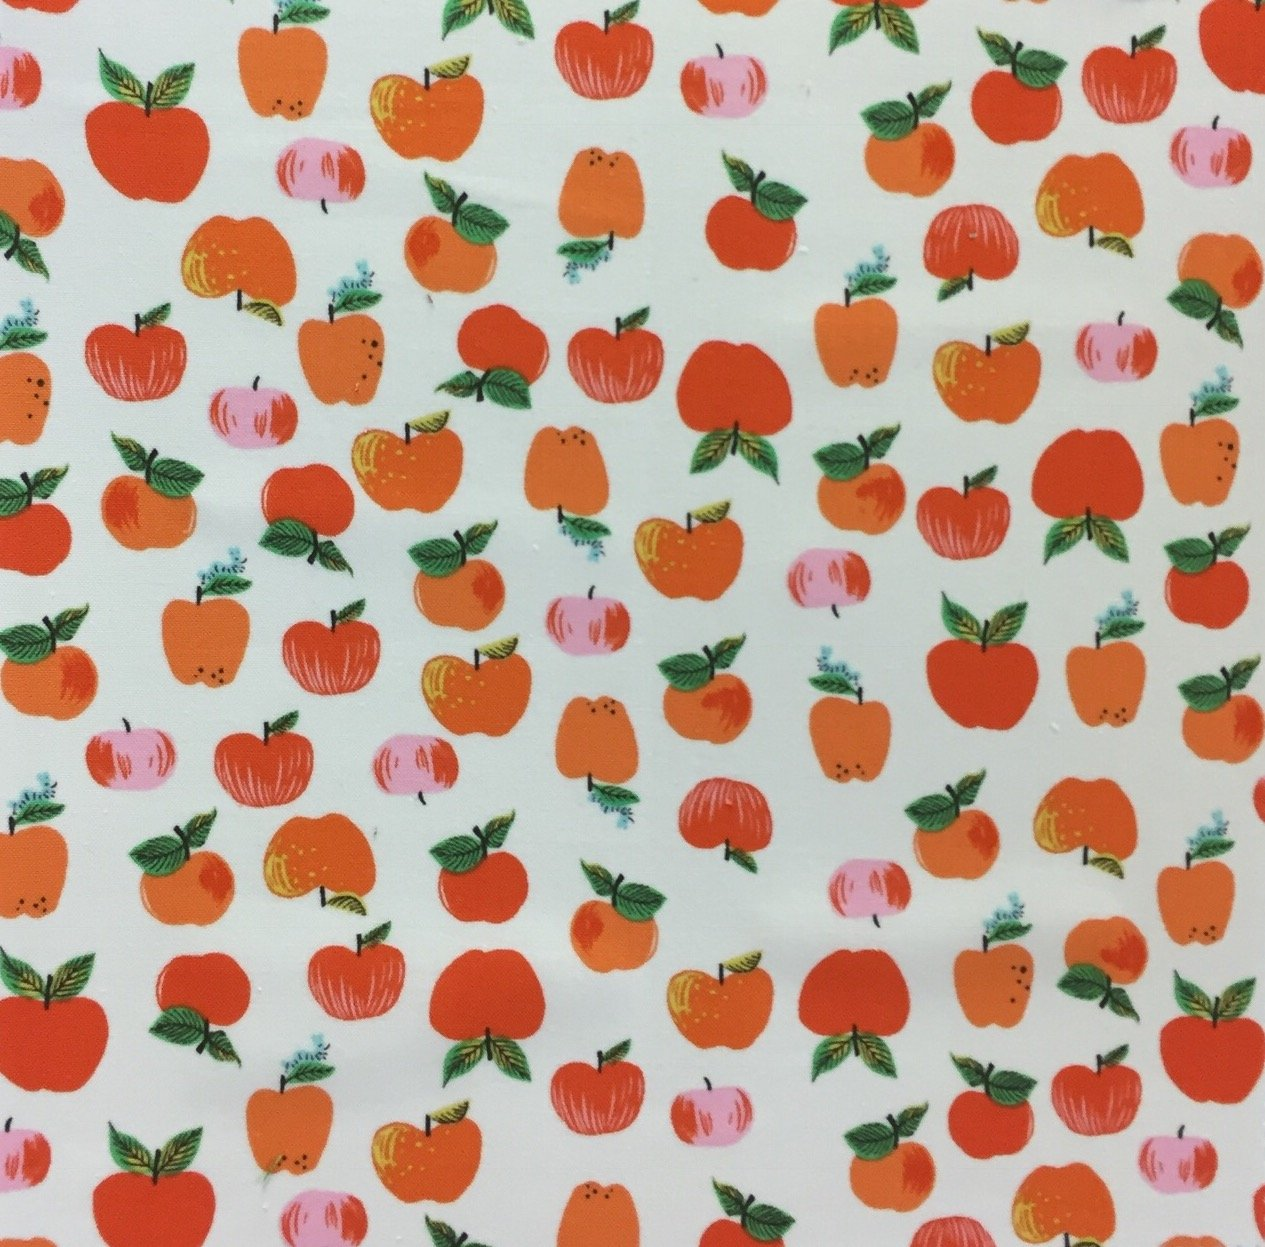 Heather Ross Kinder Retro Apples Fruit  School Teacher Cotton Quilt Fabric WI122